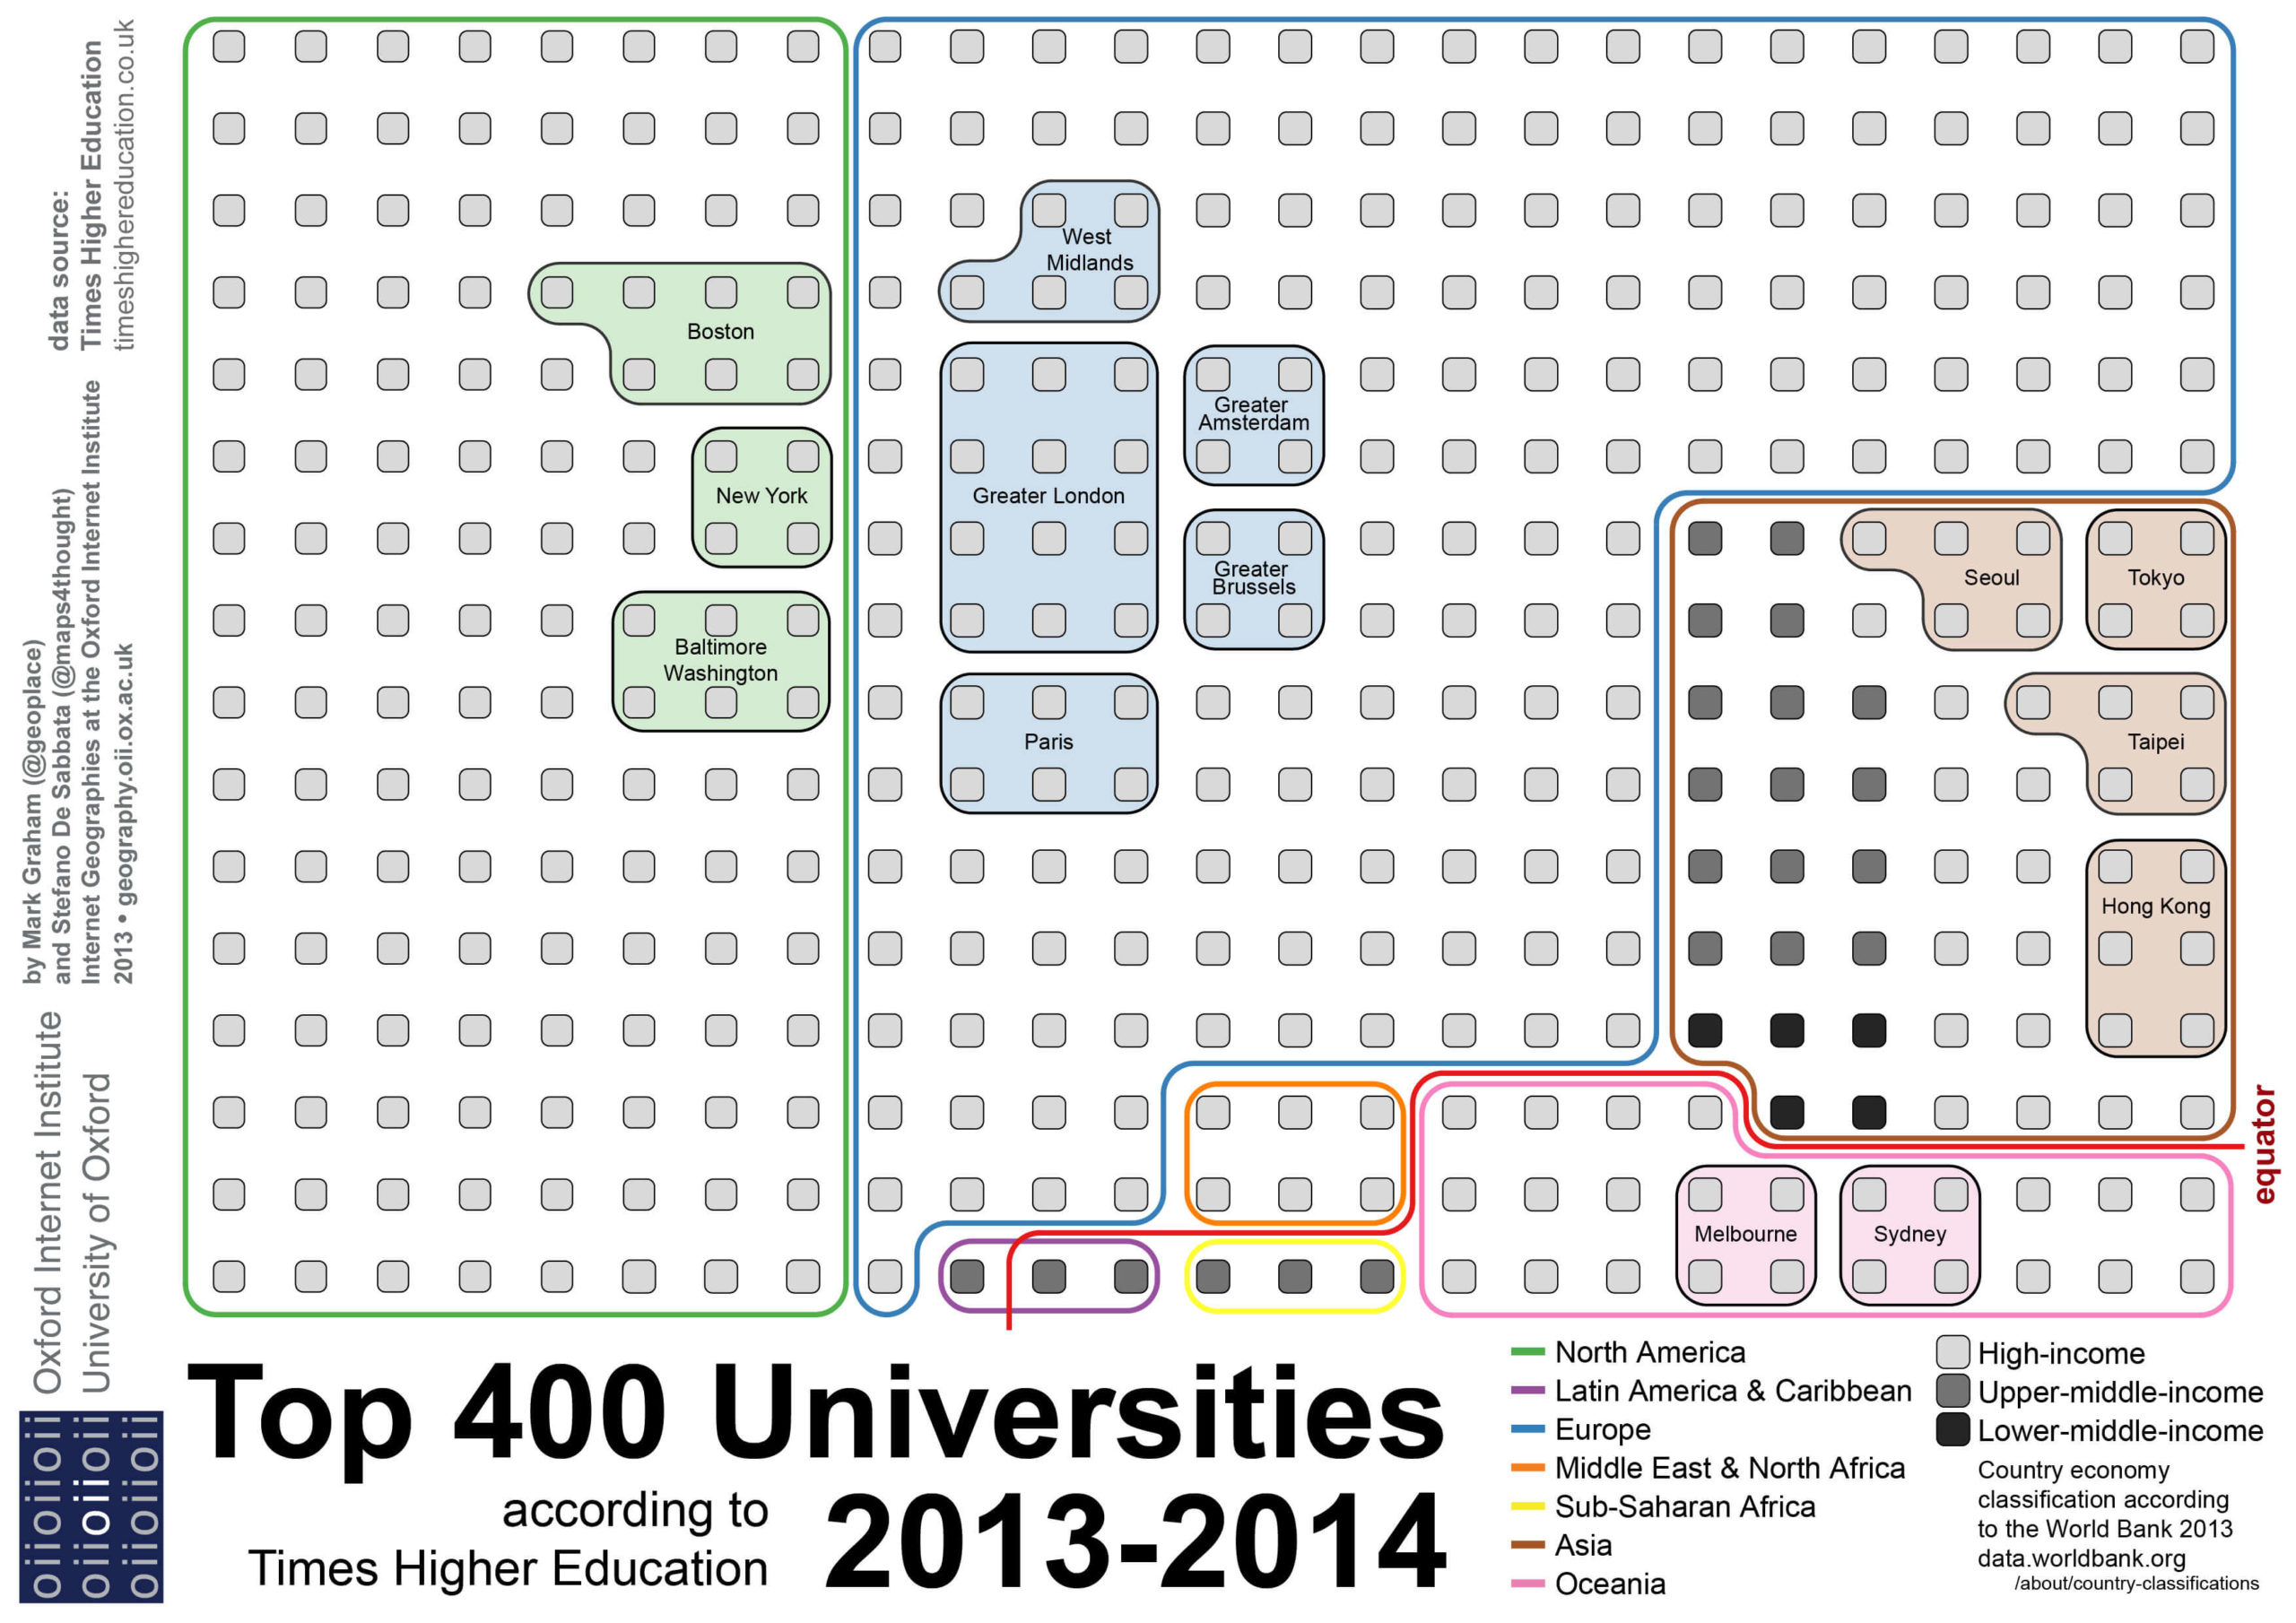 Mapping the Times Higher Education's top-400 universities